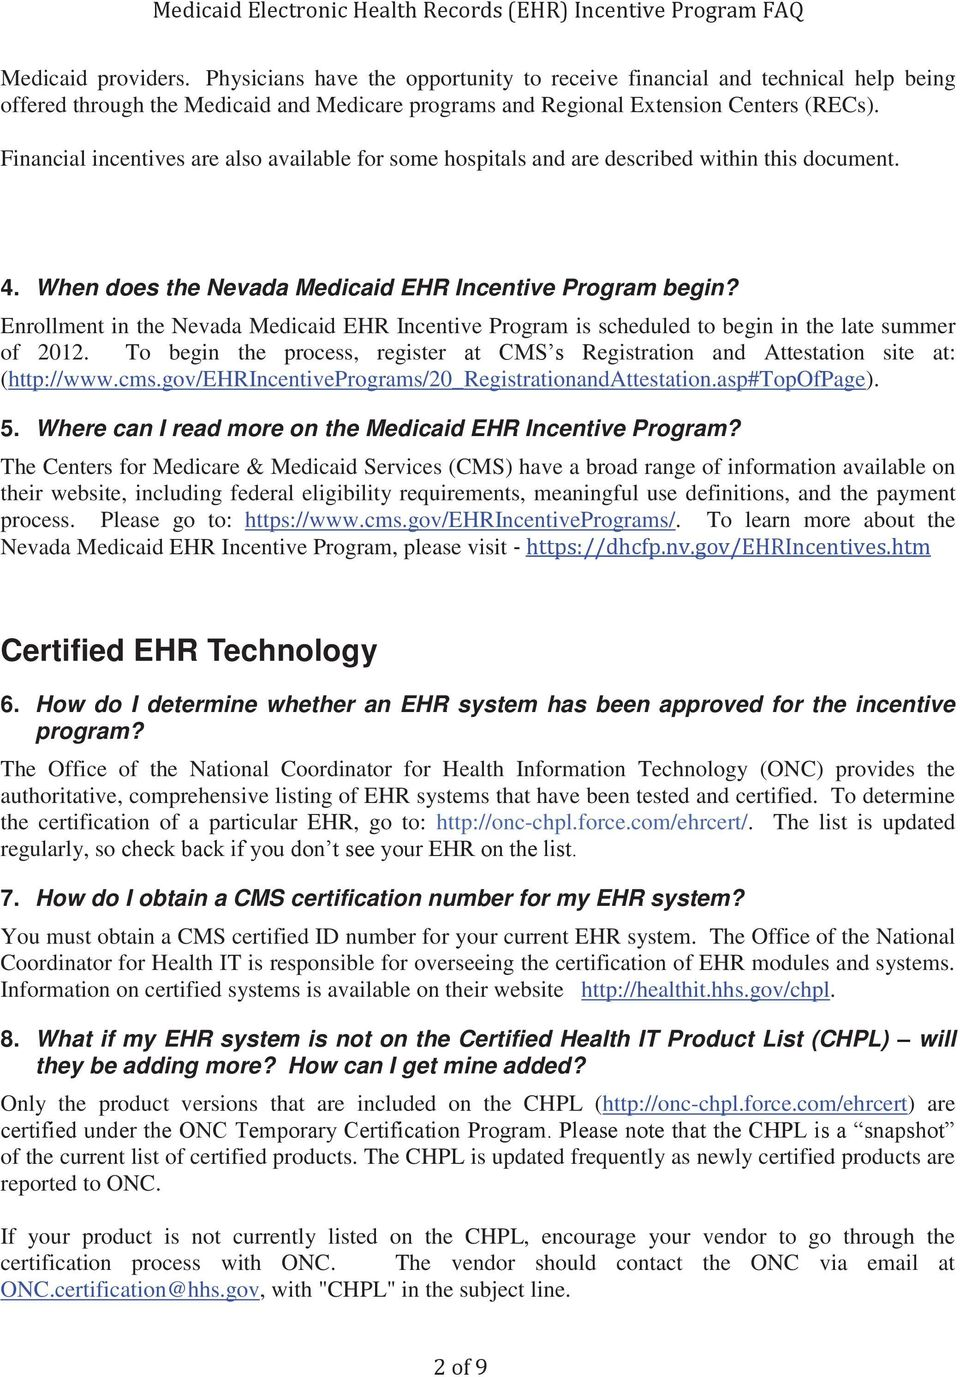 Enrollment in the Nevada Medicaid EHR Incentive Program is scheduled to begin in the late summer of 2012. To begin the process, register at CMS s Registration and Attestation site at: (http://www.cms.